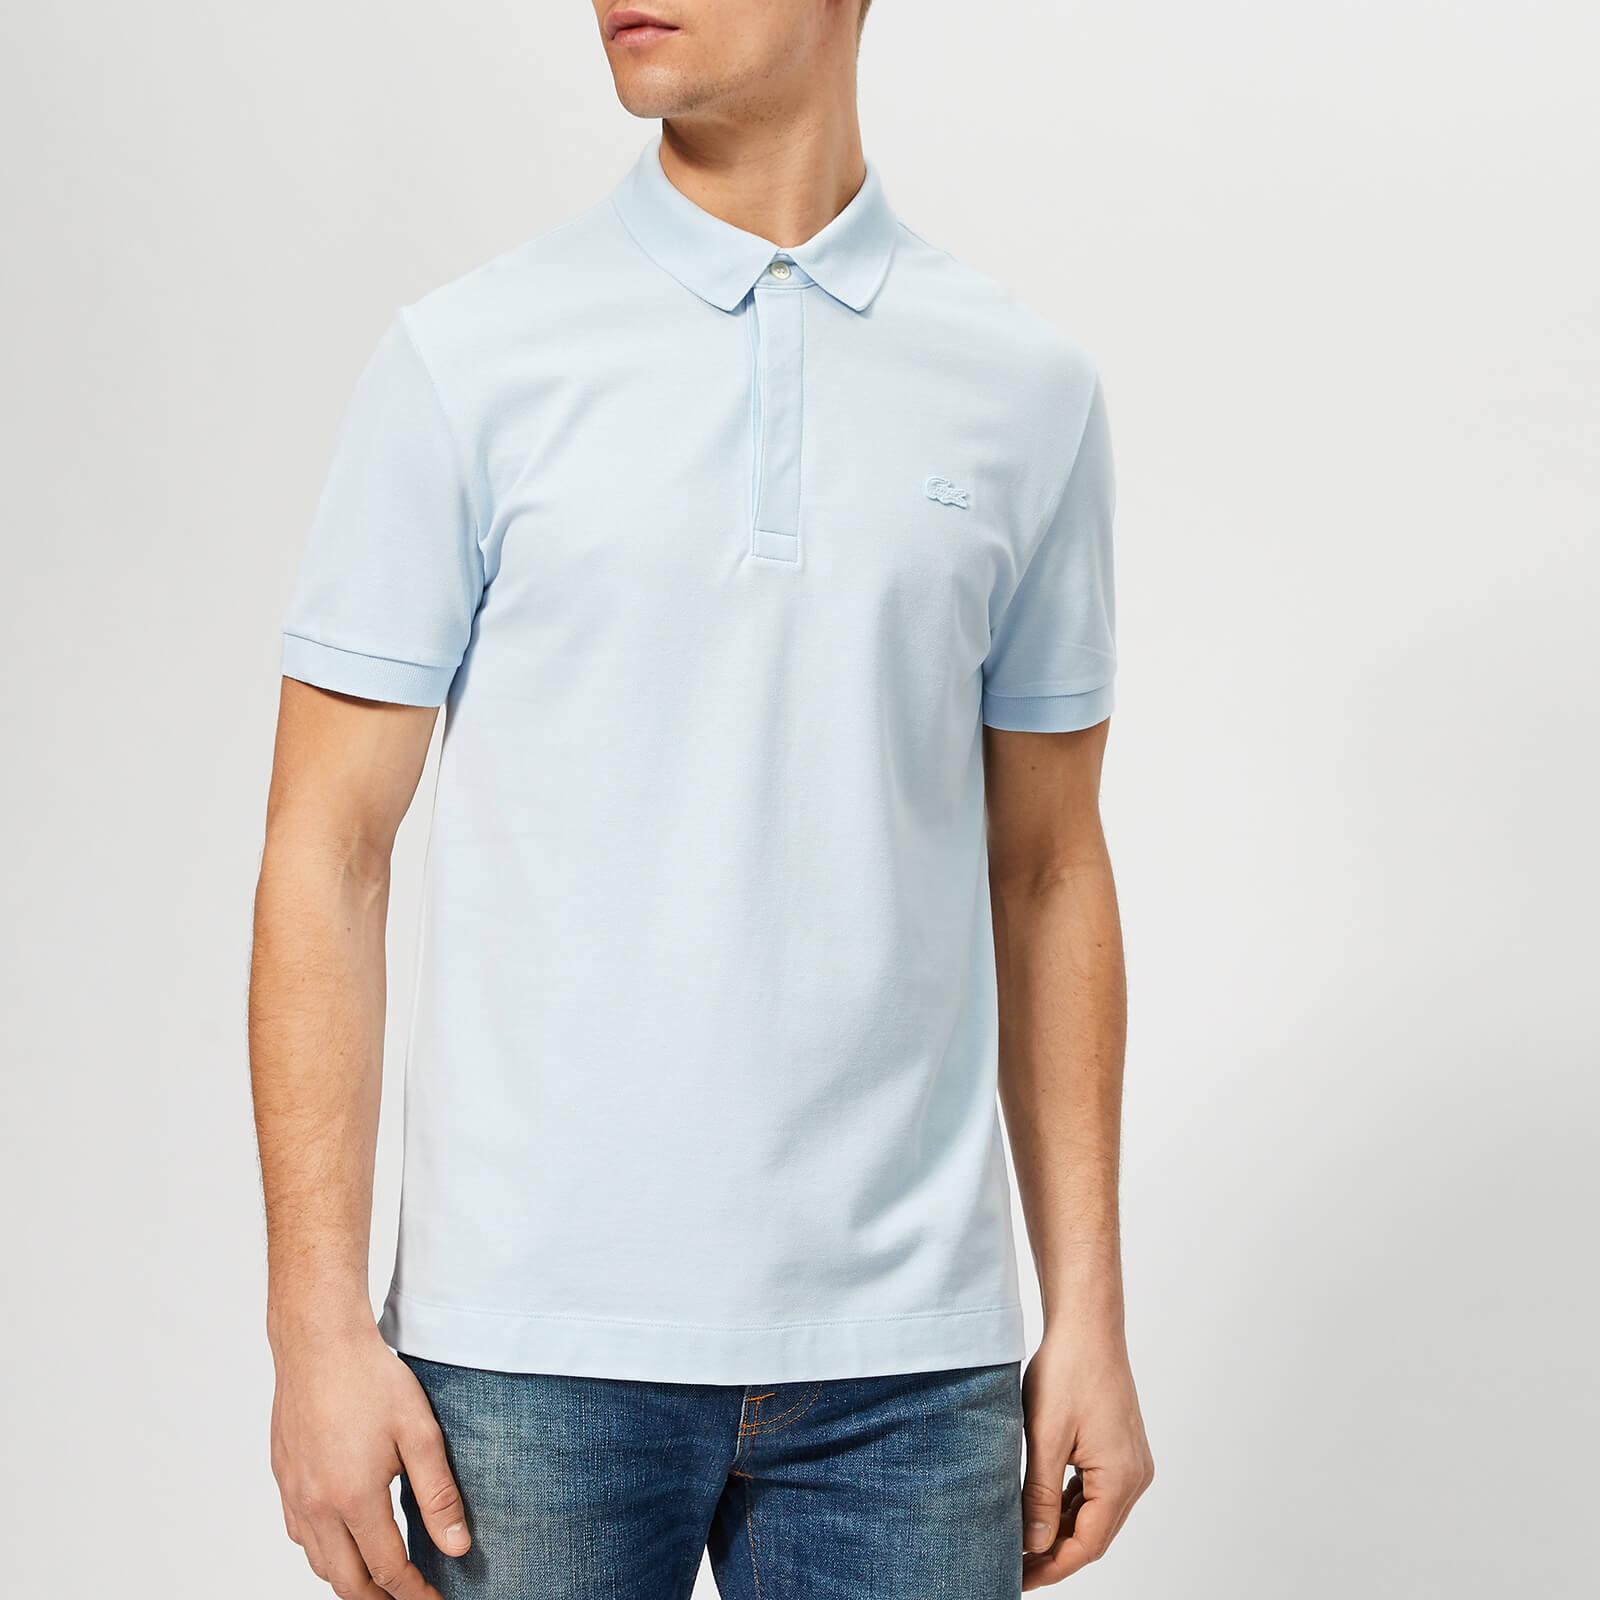 b41e8129 Lacoste Men's Short Sleeve Paris Polo Shirt - Sky - Free UK Delivery over  £50